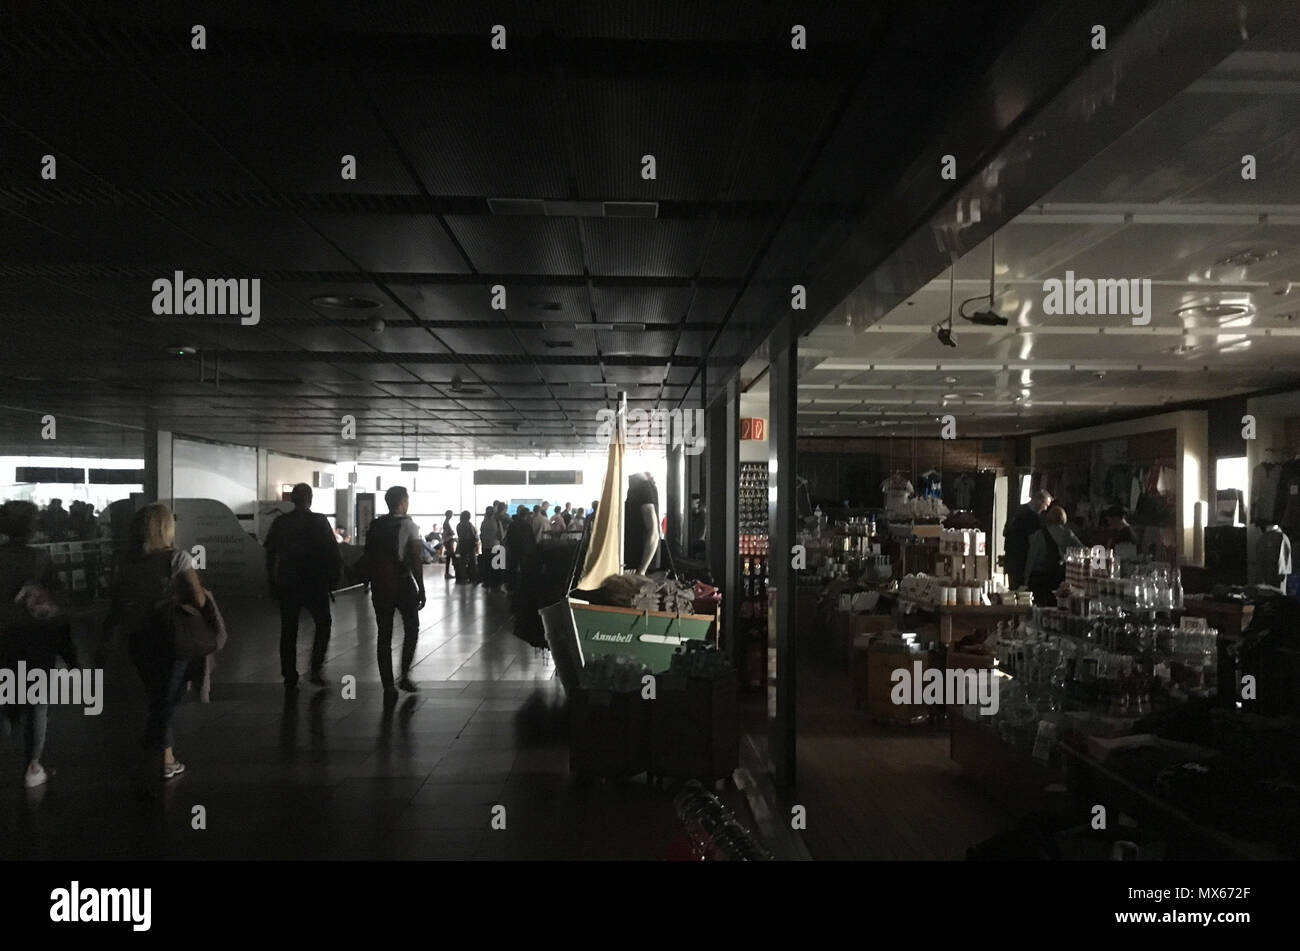 Hamburg, Germany. 03rd June, 2018. 03 June 2018, Hamburg, Germany: Travelers walk through the unlit airport during a power outage. The power outage paralyzed Hamburg Airport. Most departure switches were closed. Everywhere long lines formed. The shops were closed, the air conditioning did not work either. Credit: Thomas Müller/dpa/Alamy Live News - Stock Image